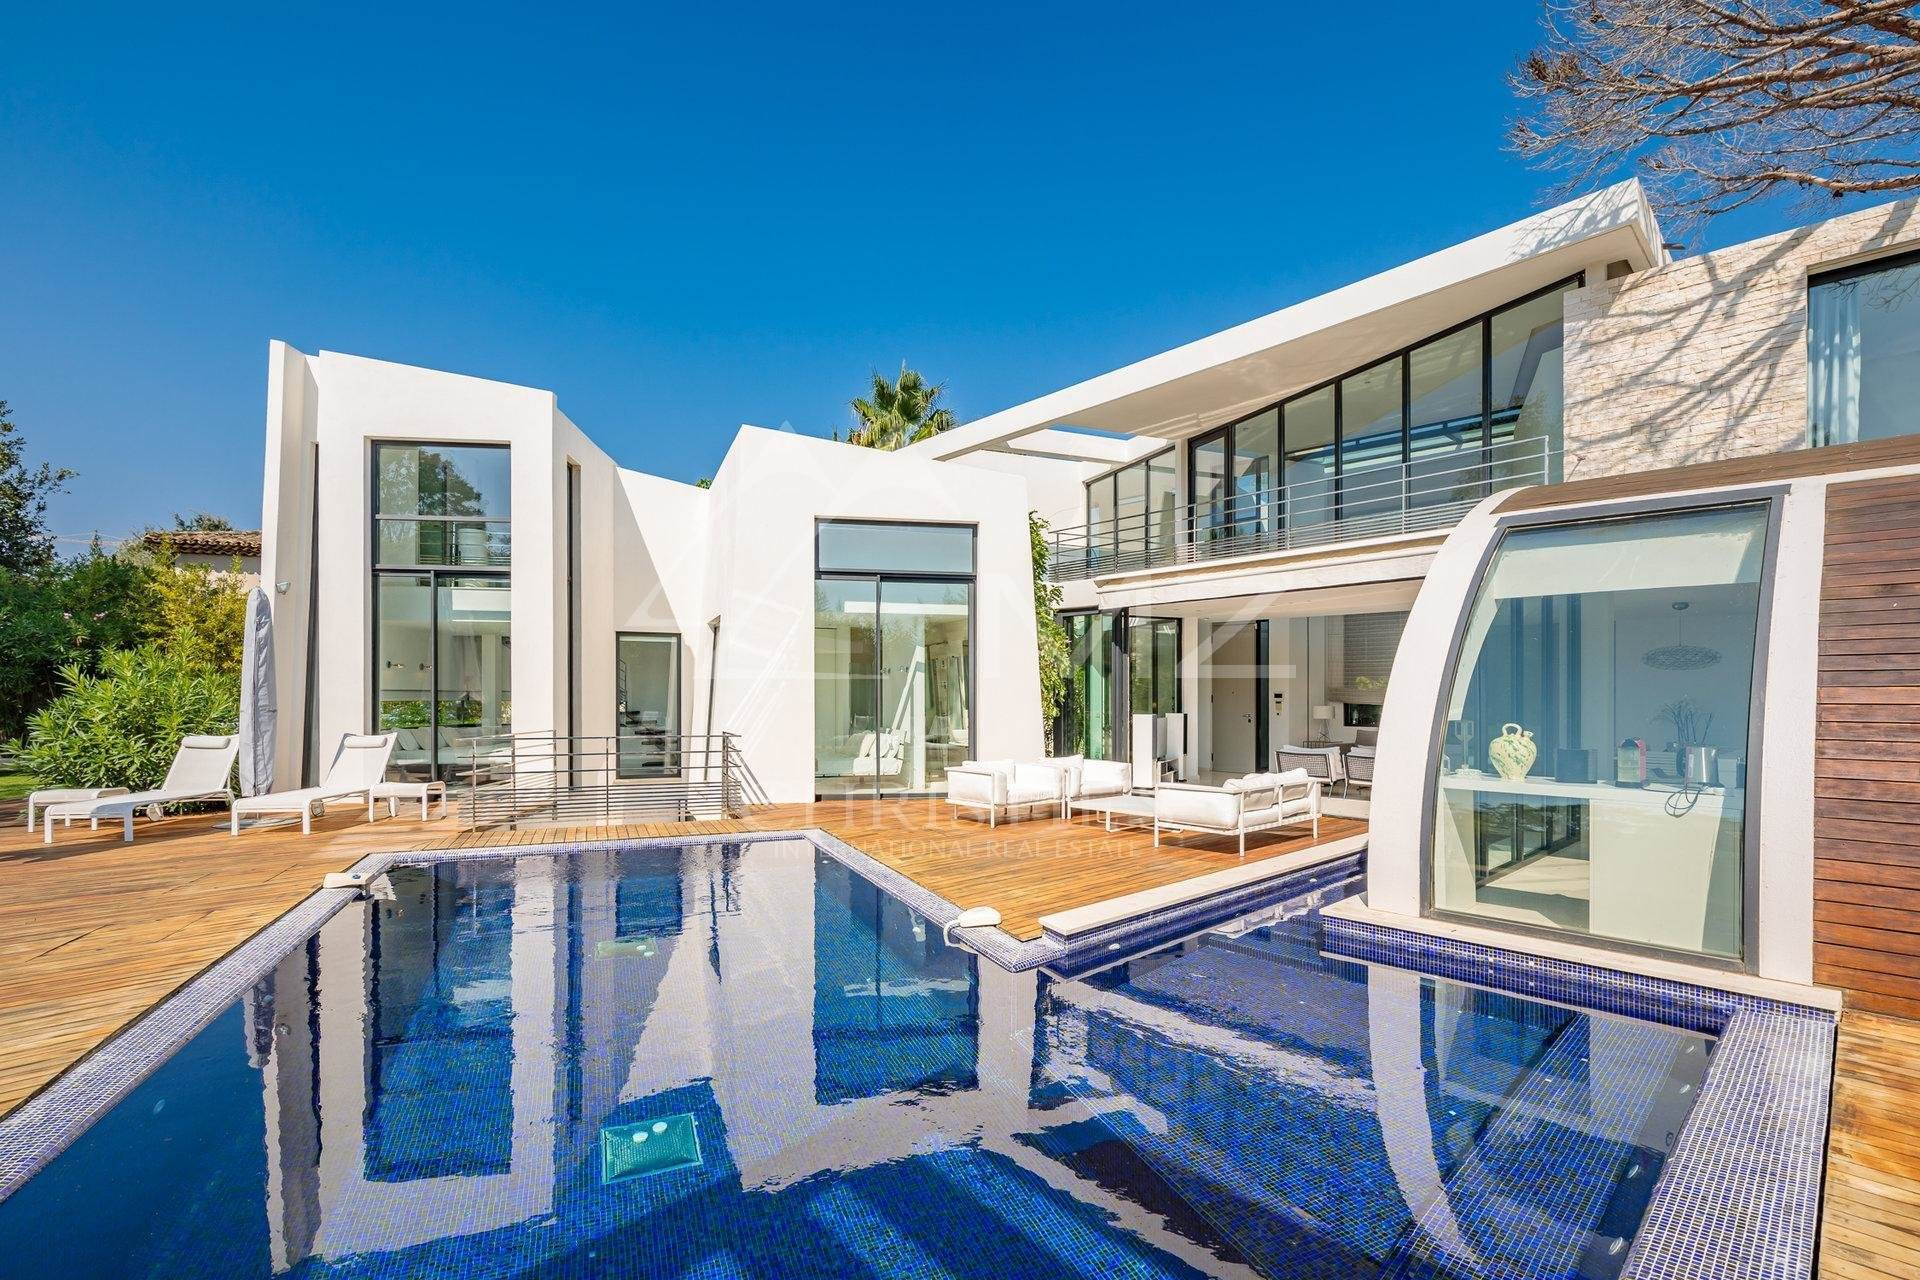 Villa/Townhouse for Sale at Pampelonne - Contemporary villa close to the Club 55 Ramatuelle, Var,83350 France